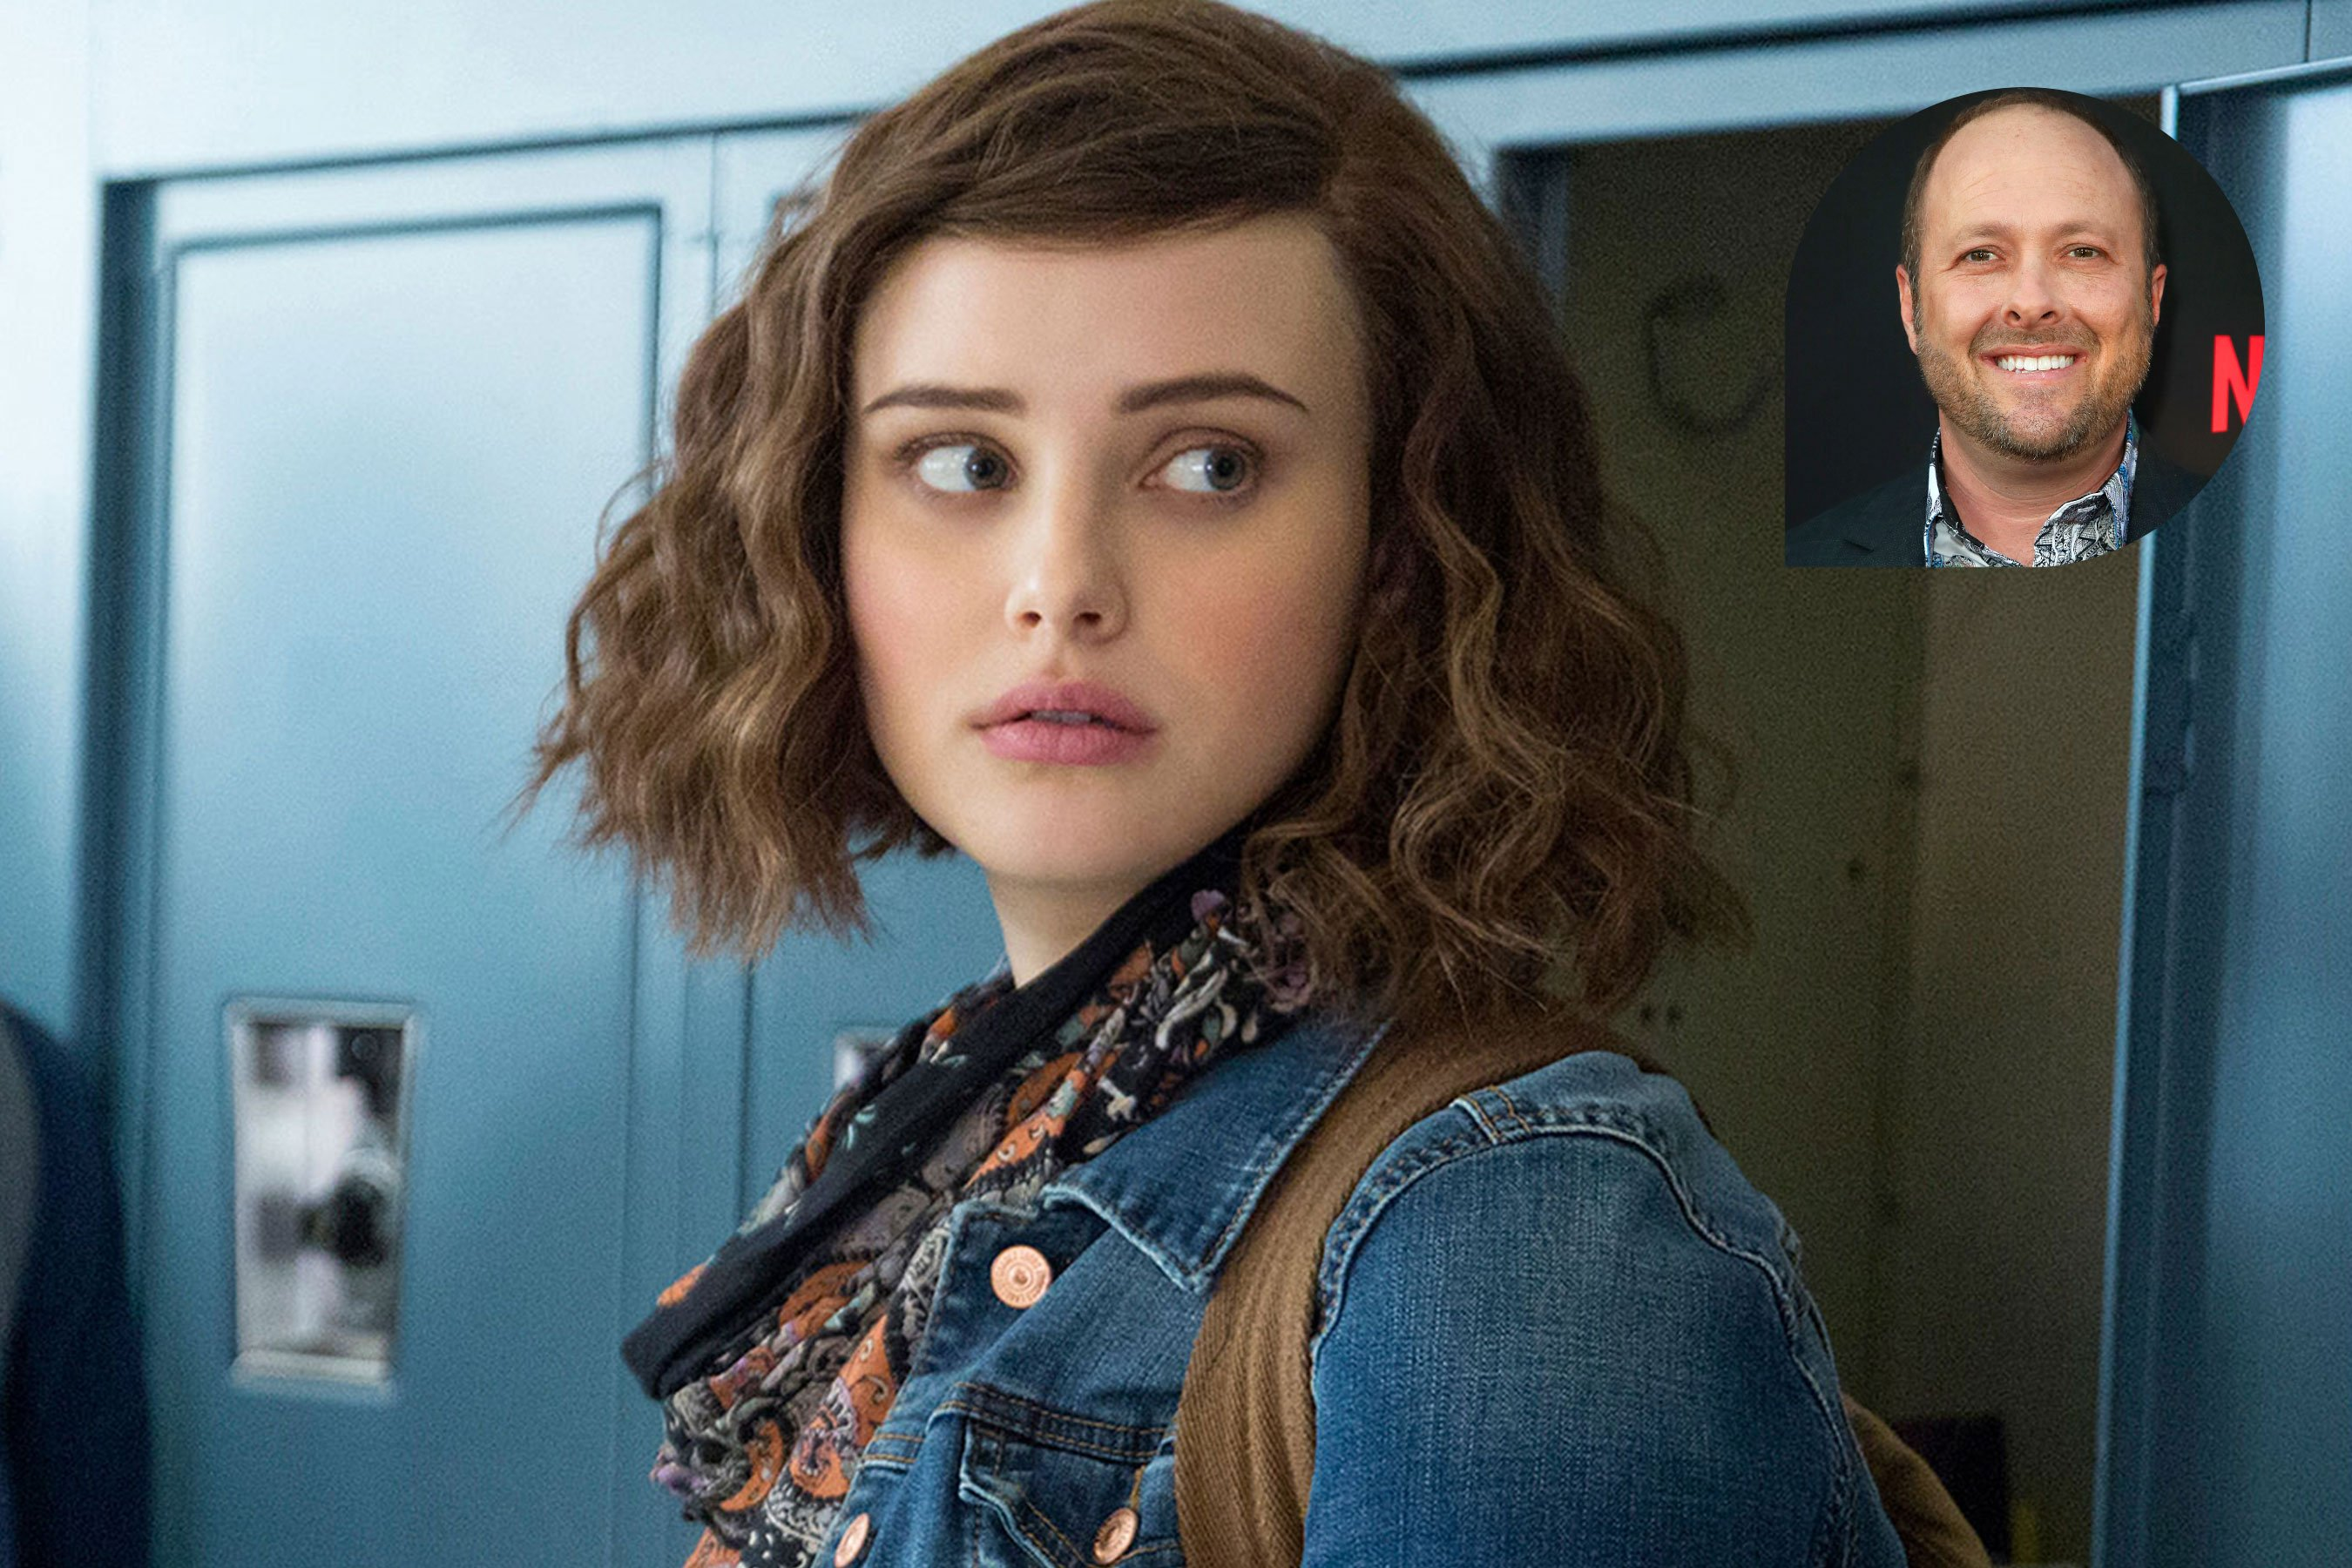 13 Reasons Why: Netflix says Jay Asher 'was not involved' in season 2